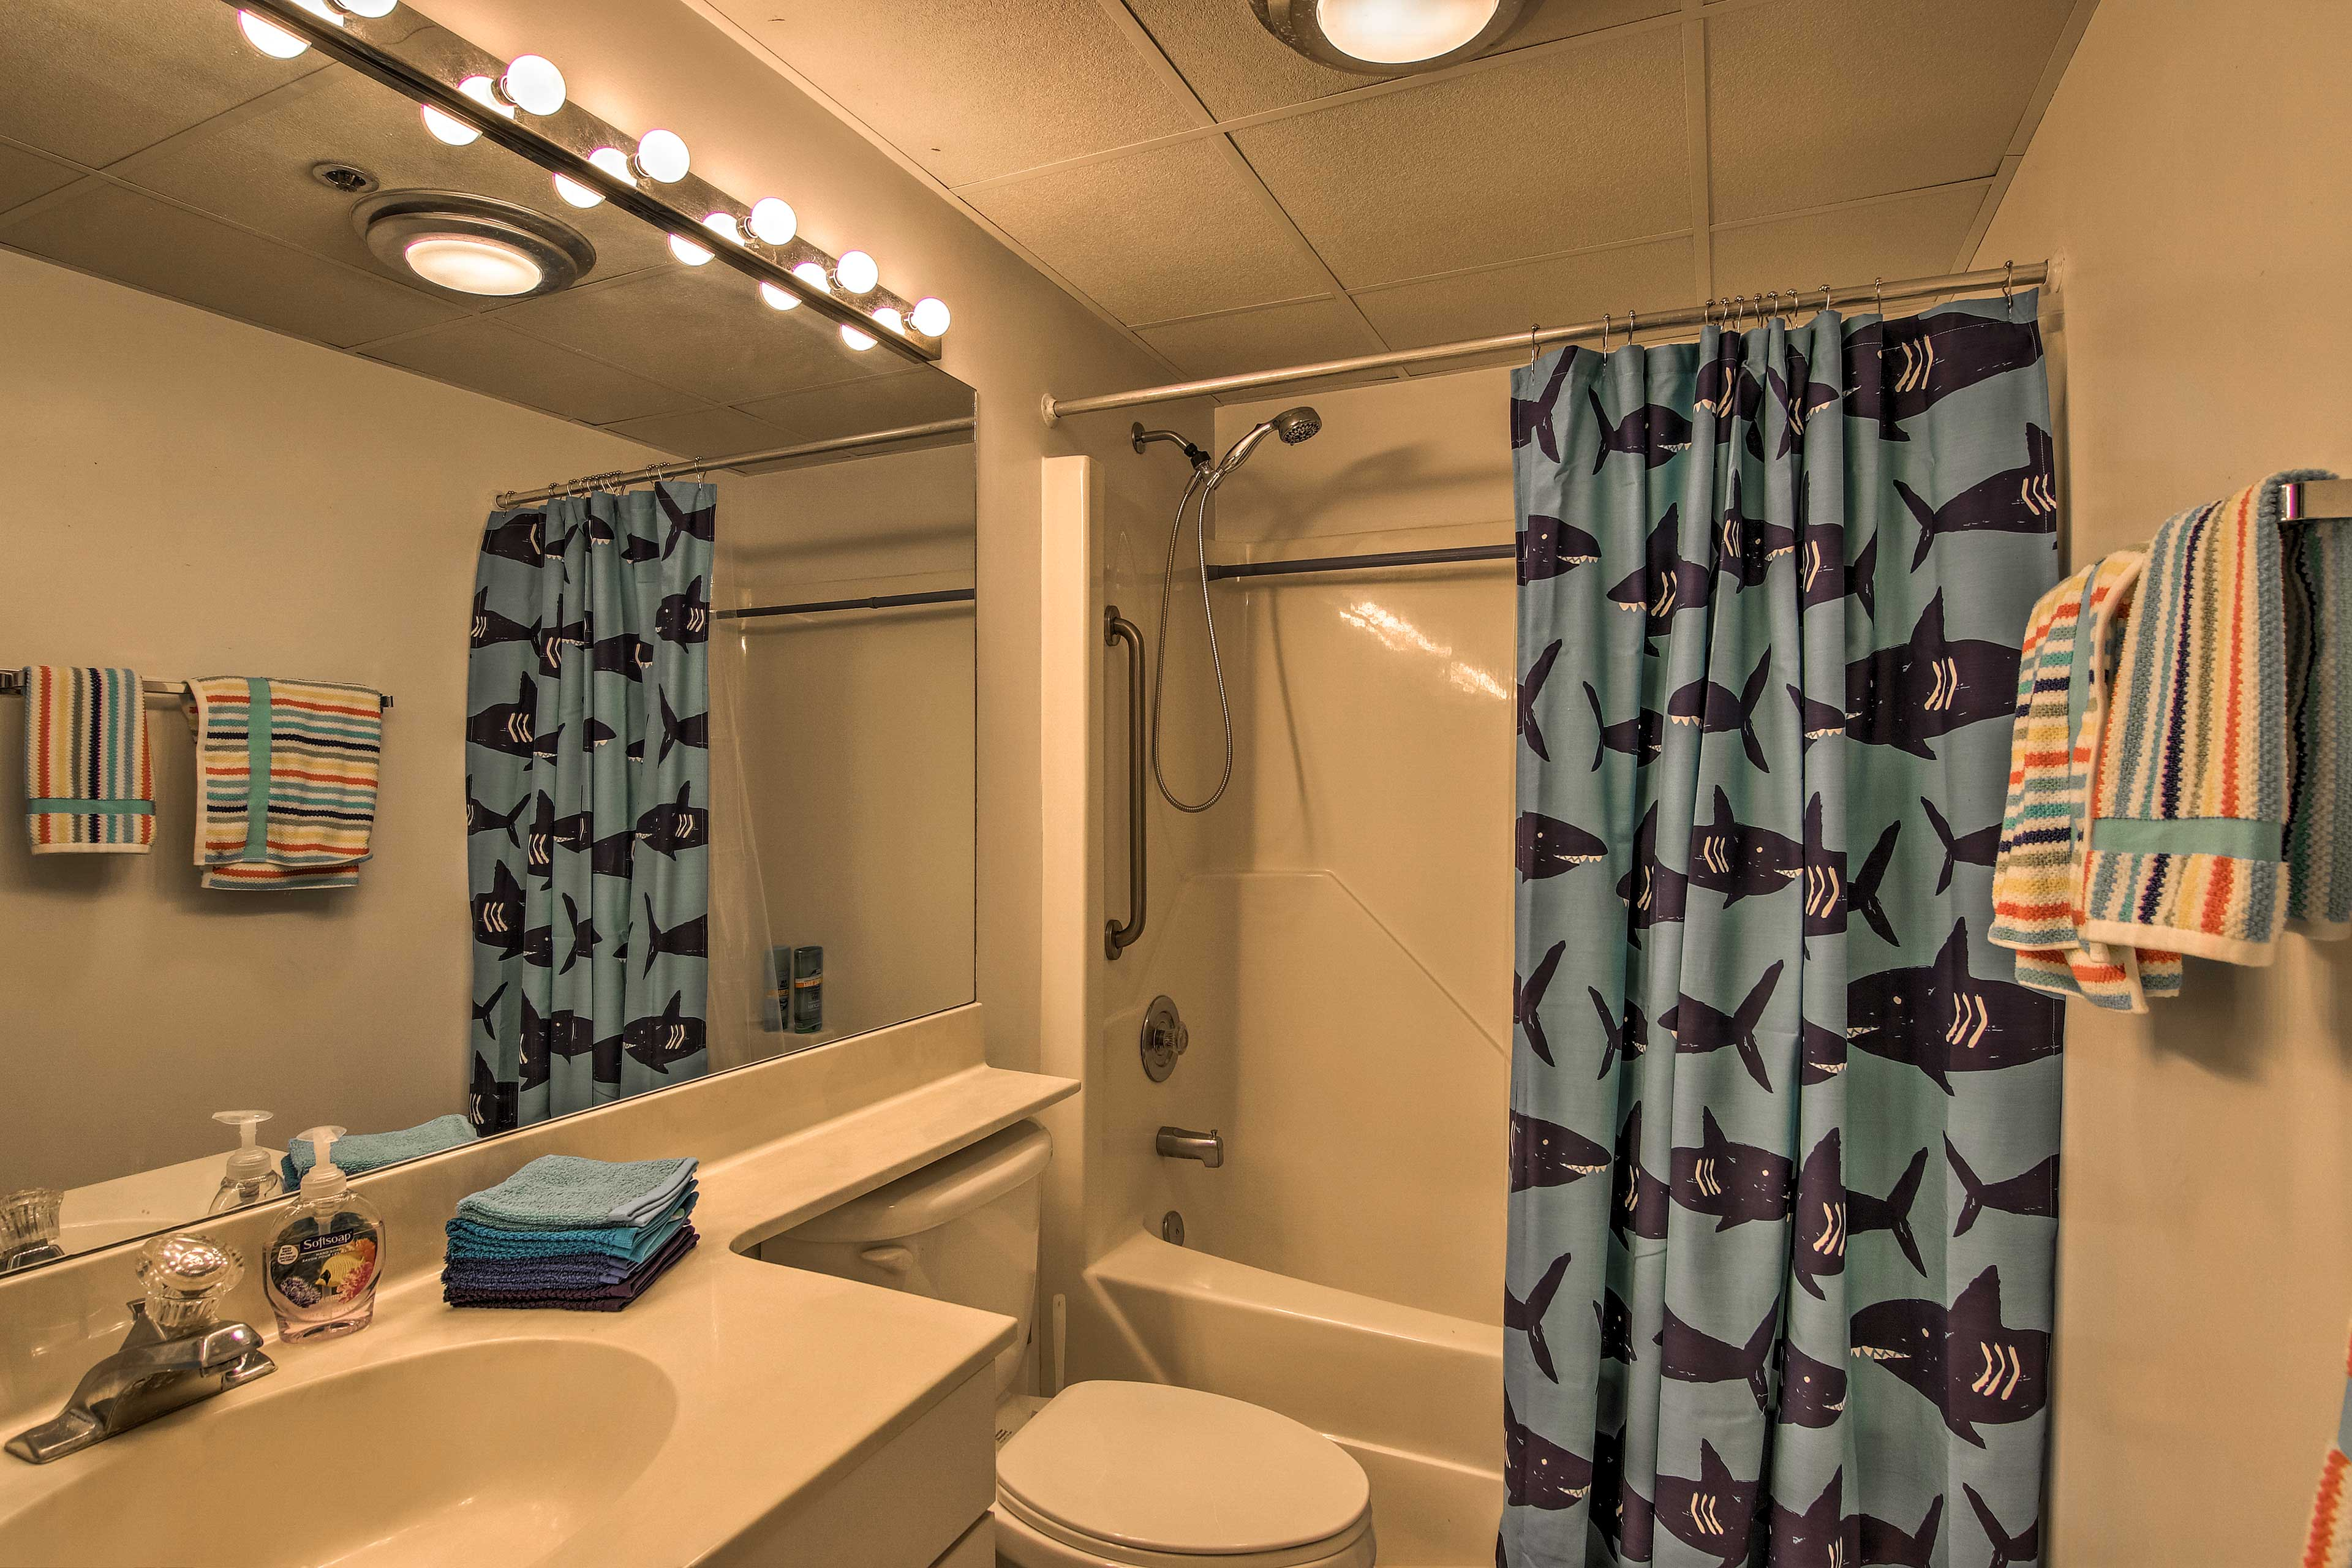 This bathroom also offers a shower/tub combo.